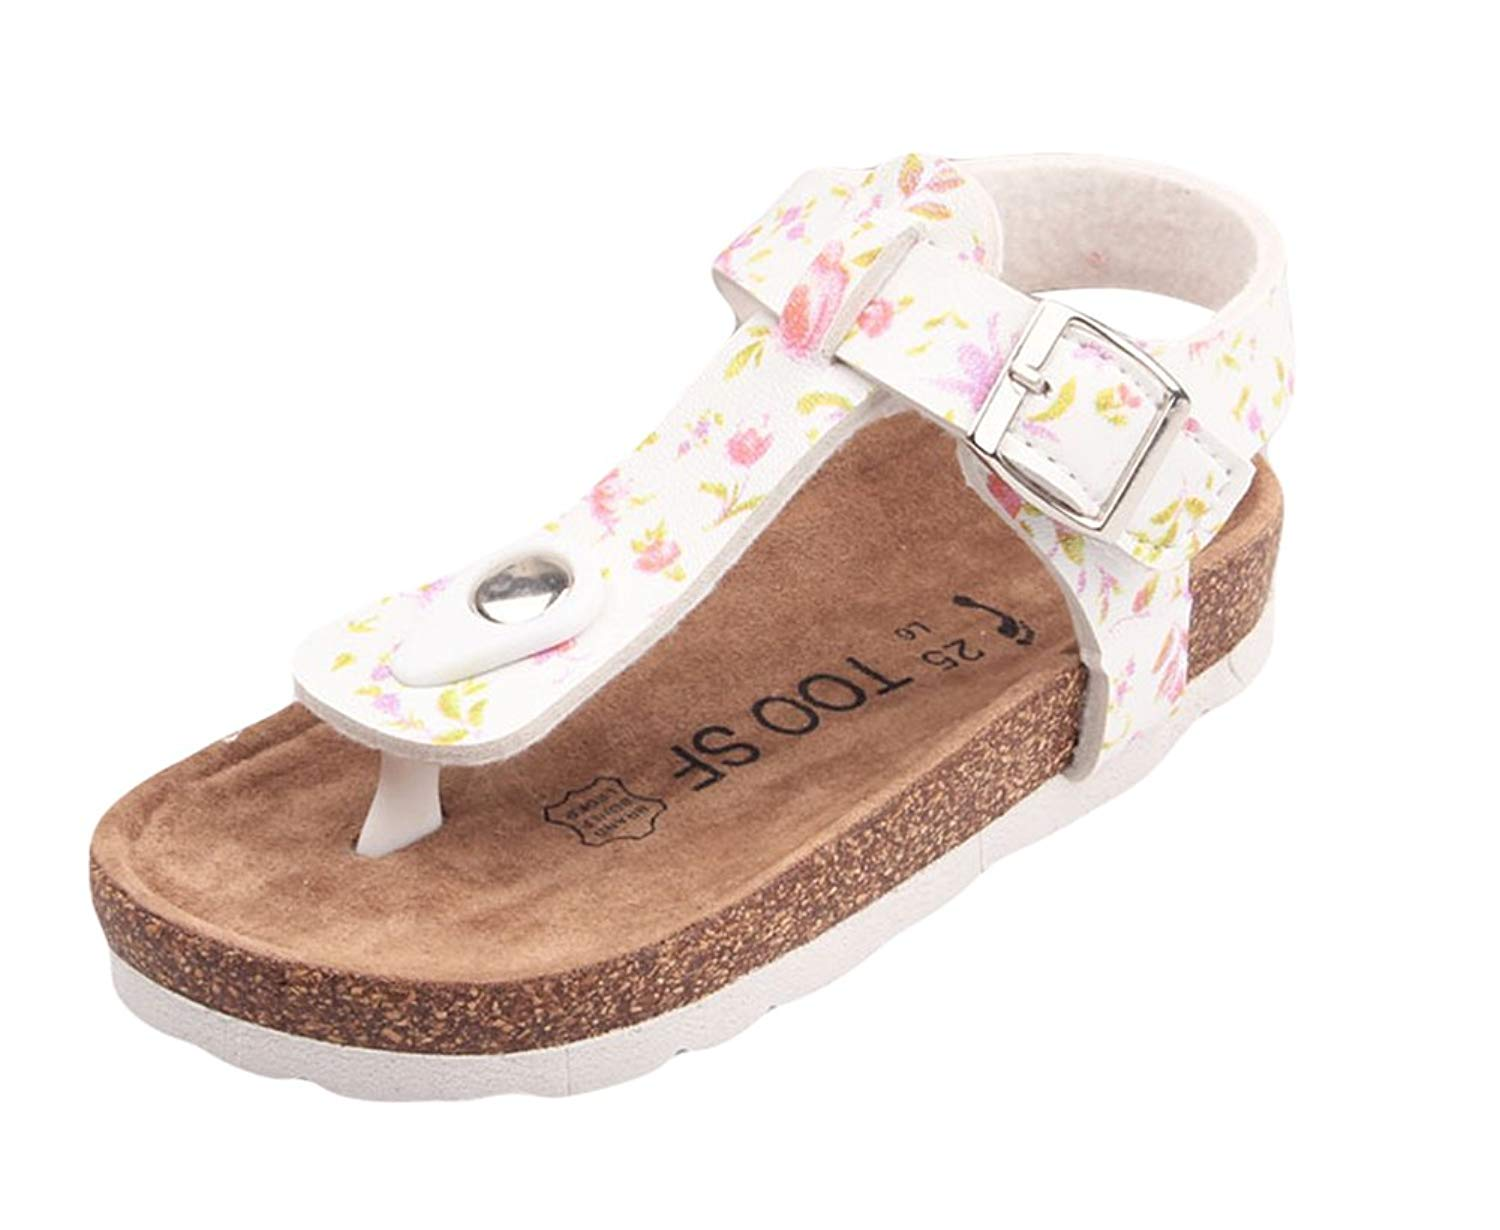 6966068254b6c Get Quotations · ONCEFIRST Girl s Casual PU Leather Thong Cork Sandals